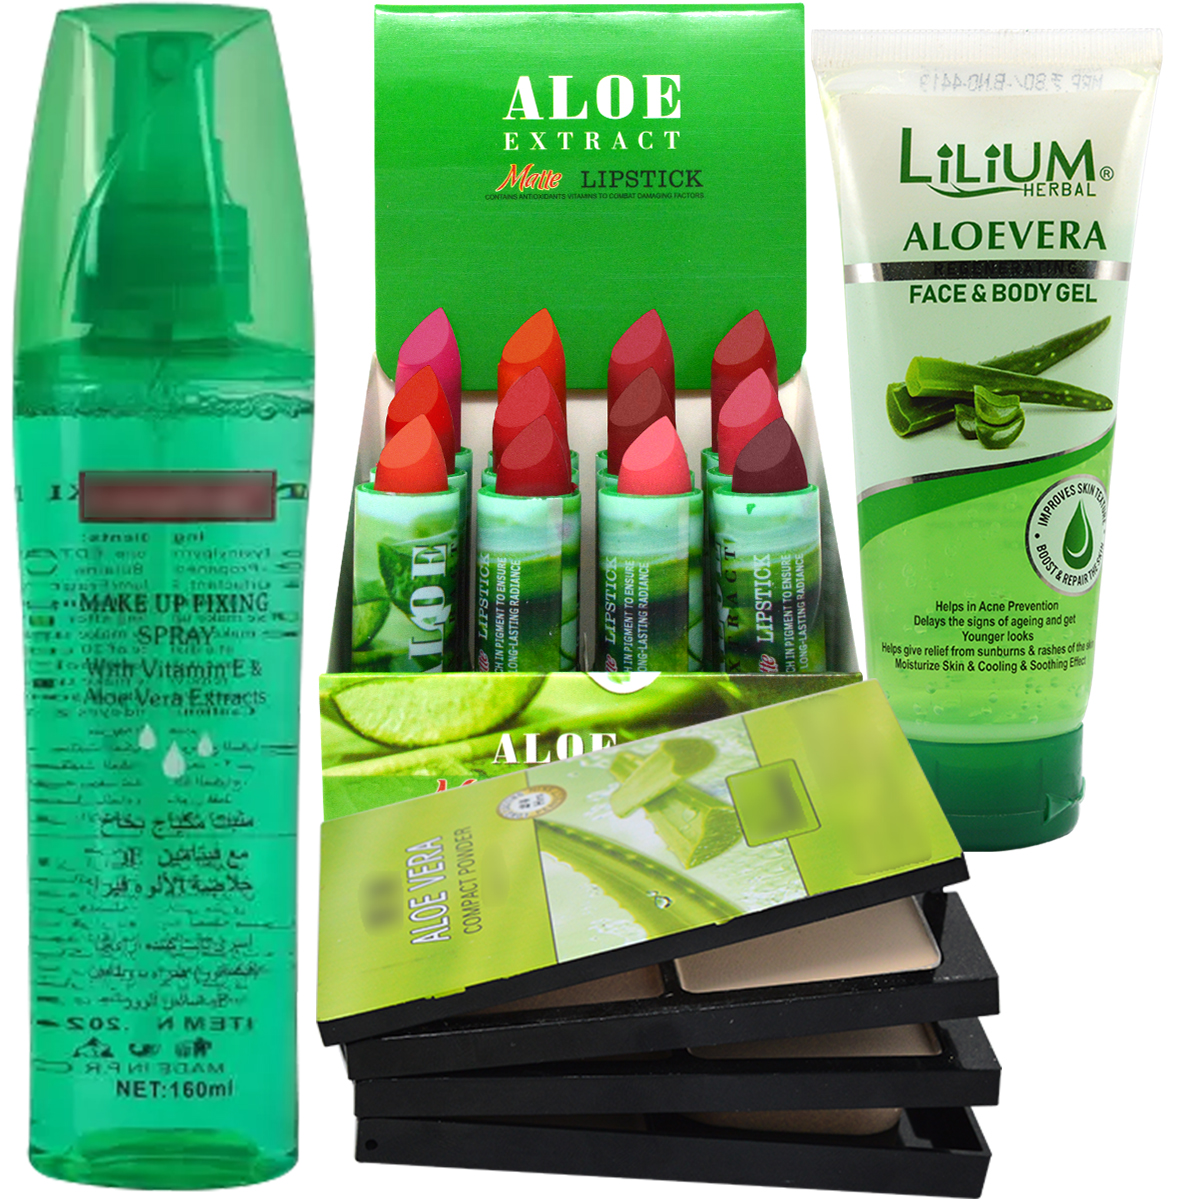 Lilium Complete Aloe Vera Makeup Kit With Skin Care Combo Pack